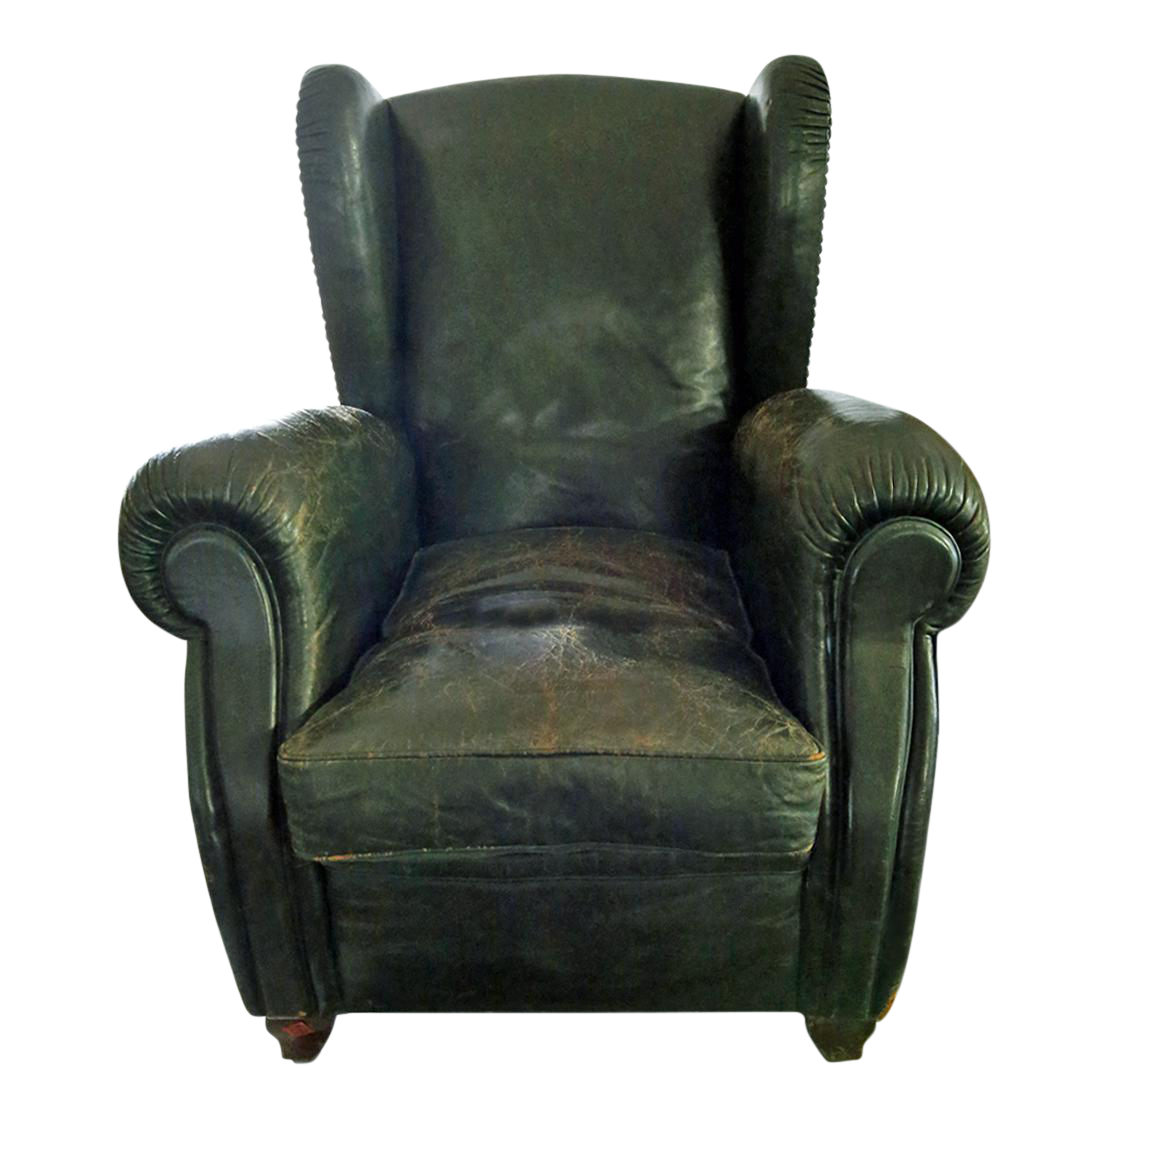 Vintage Green Leather Armchair | Chairish